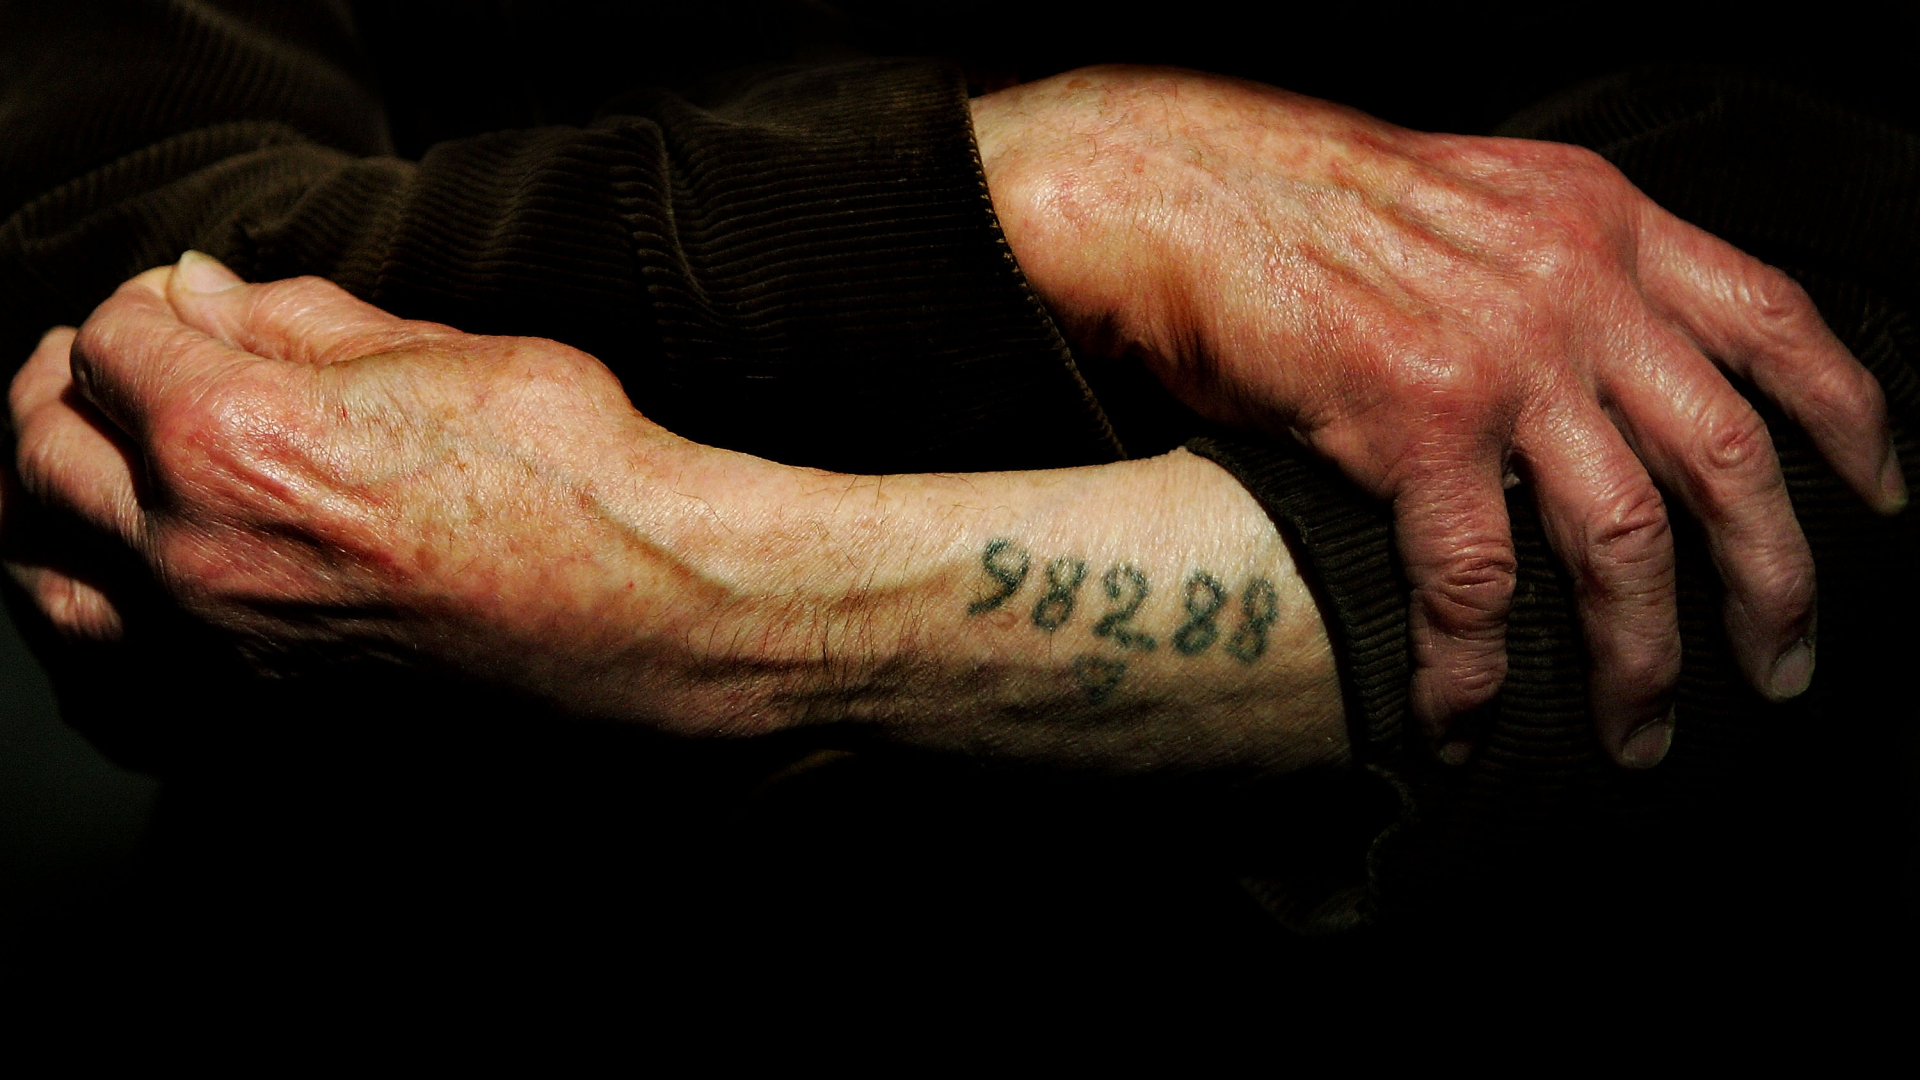 Auschwitz survivor Mr. Leon Greenman, displays his number tattoo at the Jewish Museum in London, England in 2004. (Credit: Ian Waldie/Getty Images)